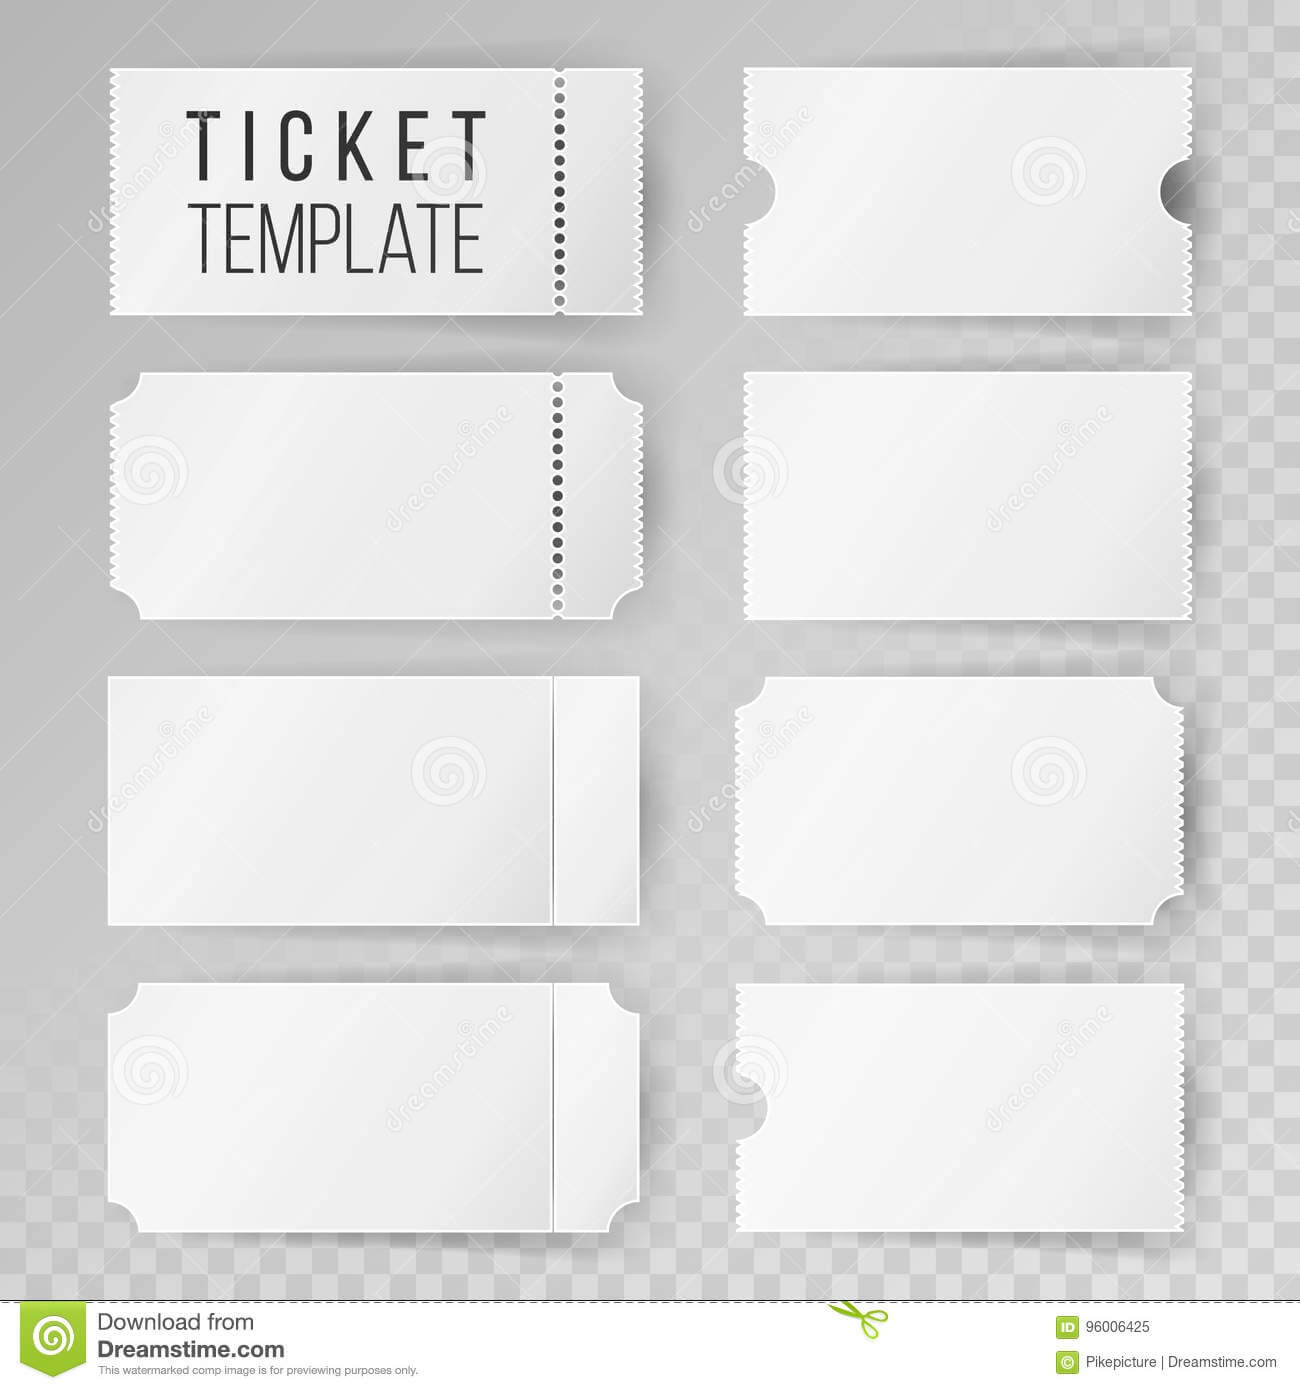 Ticket Template Set Vector. Modern Mock Up Wedding, Cinema with Blank Admission Ticket Template